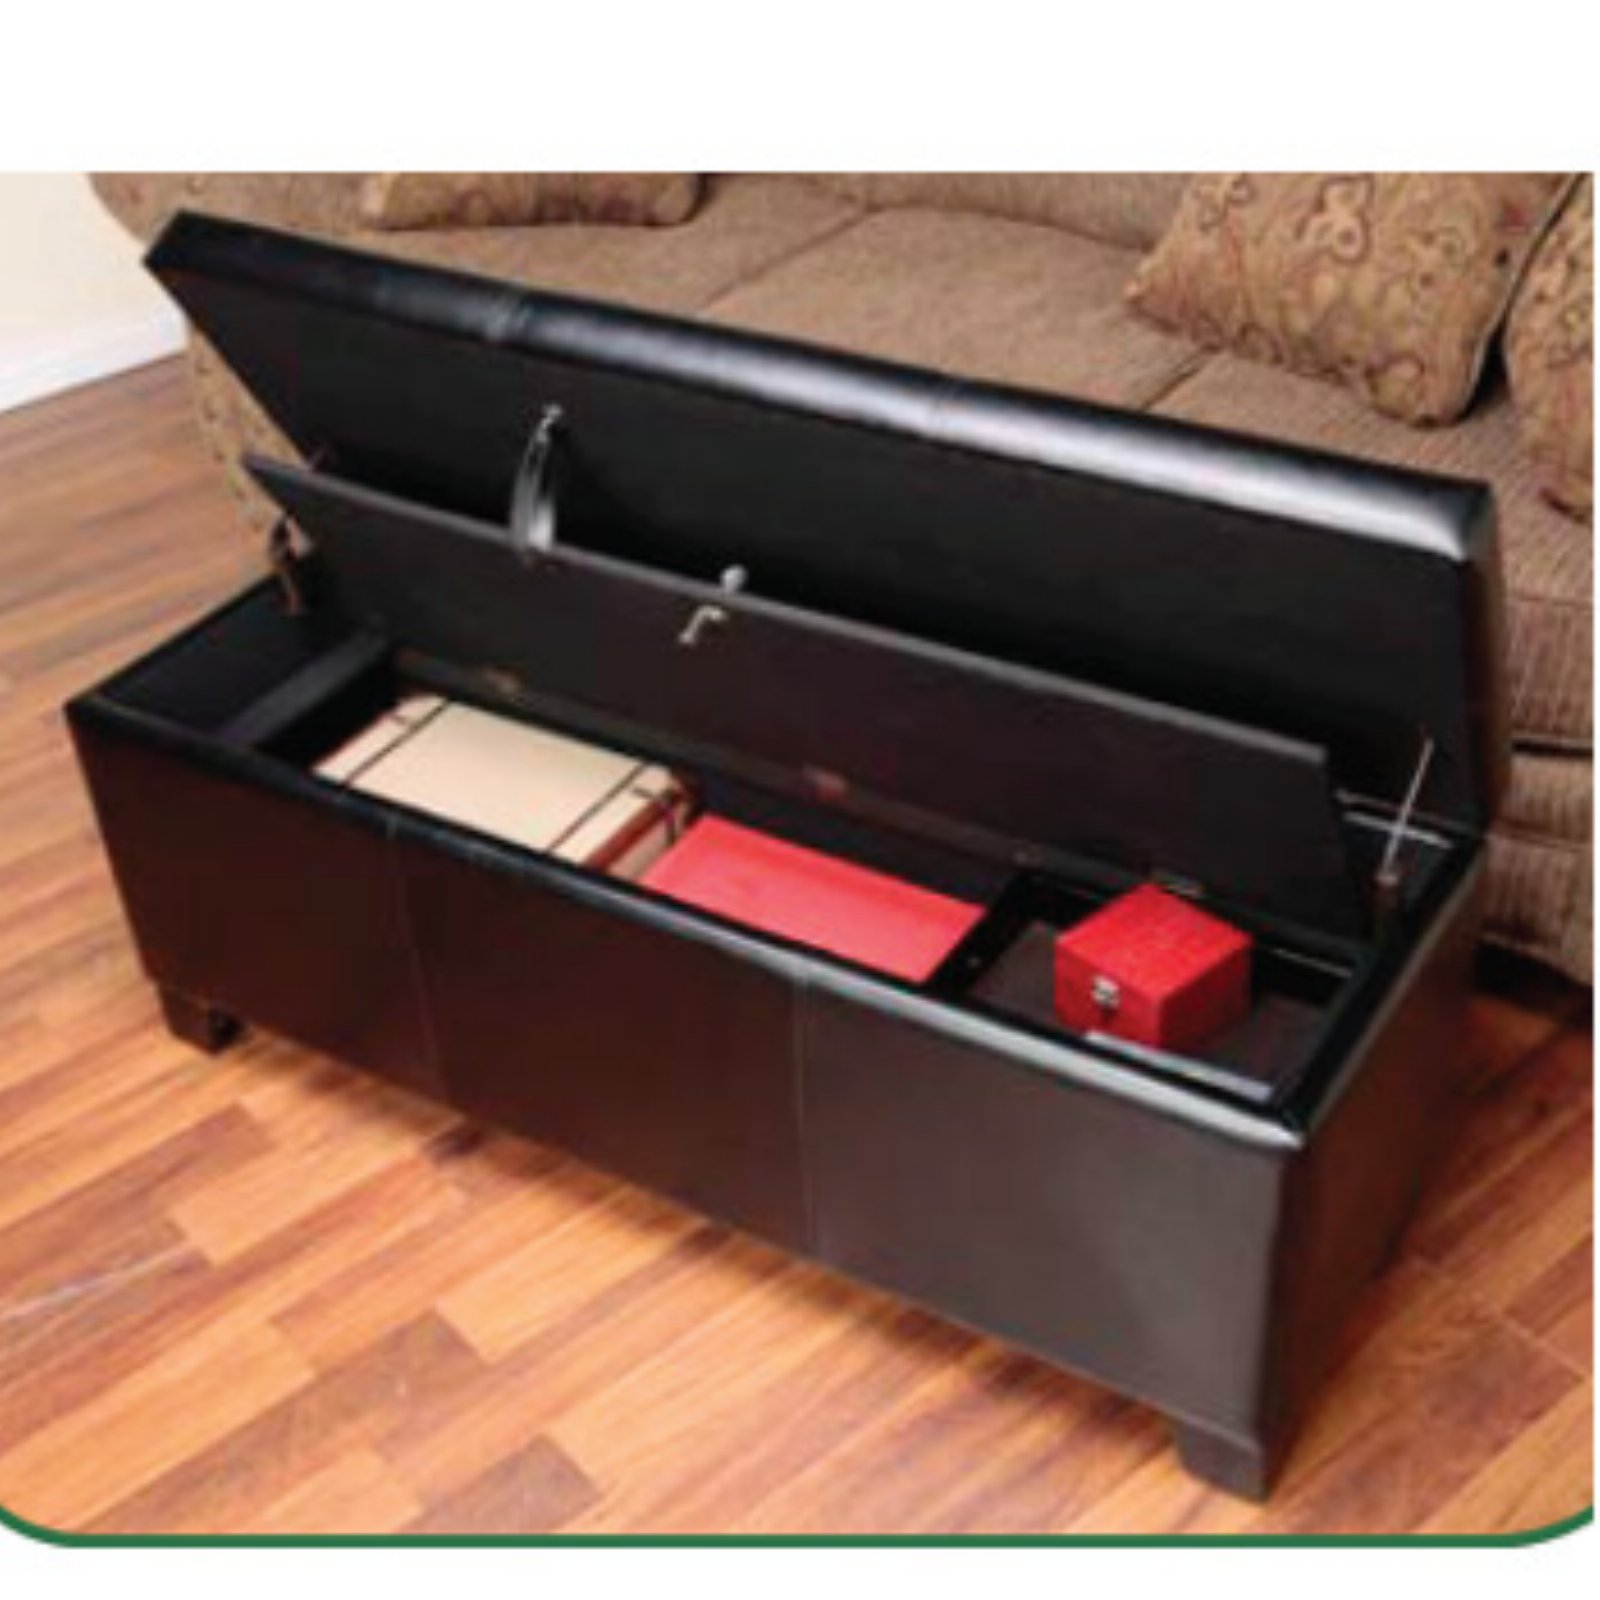 Pleasing Details About Decorative Firearm Safe Hidden Ottoman Gun Concealment Storage Bench With Lock Gamerscity Chair Design For Home Gamerscityorg